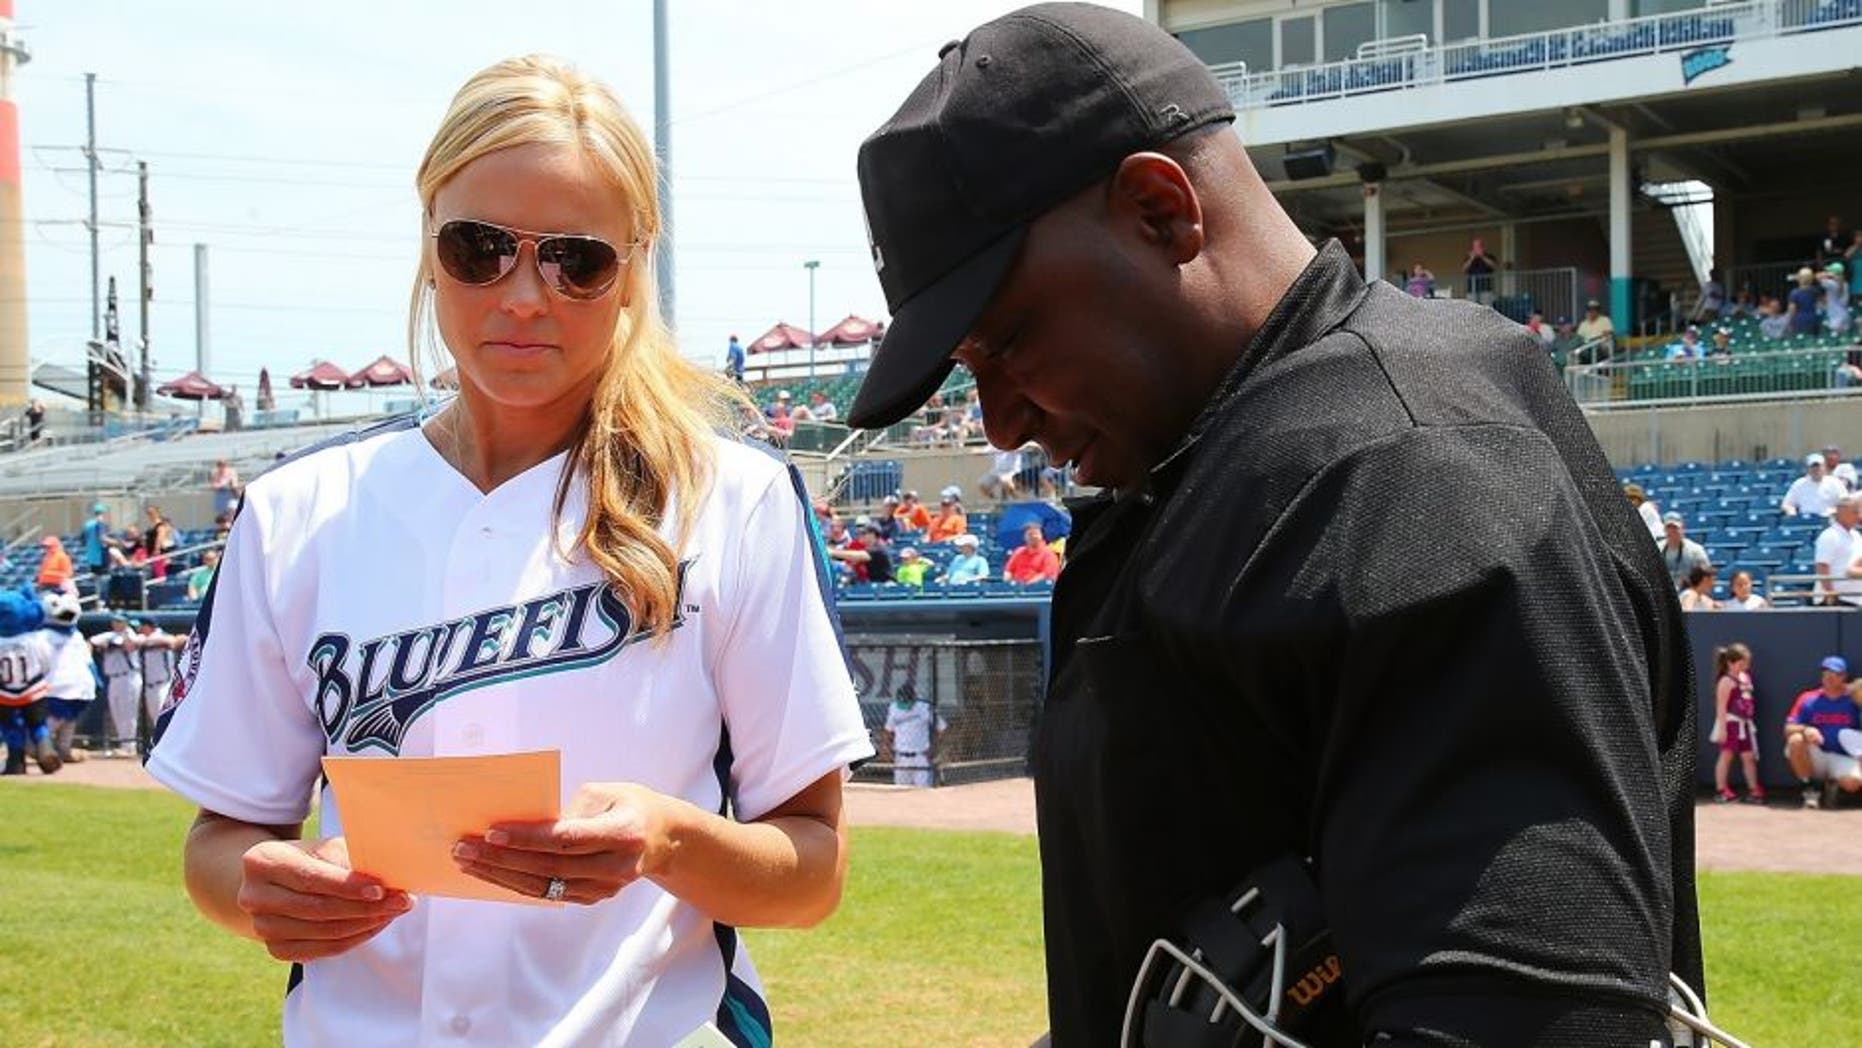 BRIDGEPORT, CT - MAY 29: Jennie Finch exchangers line up cards with Home Plate Umpire Warrren Nicholson prior to managing the Bridgeport Bluefish against Southern Maryland Blue Crabs at The Ballpark at Harbor Yards on May 29, 2016 in Bridgeport, Connecticut. Jennie Finch is the first woman to manages a men's independent league baseball game. (Photo by Mike Stobe/Getty Images)